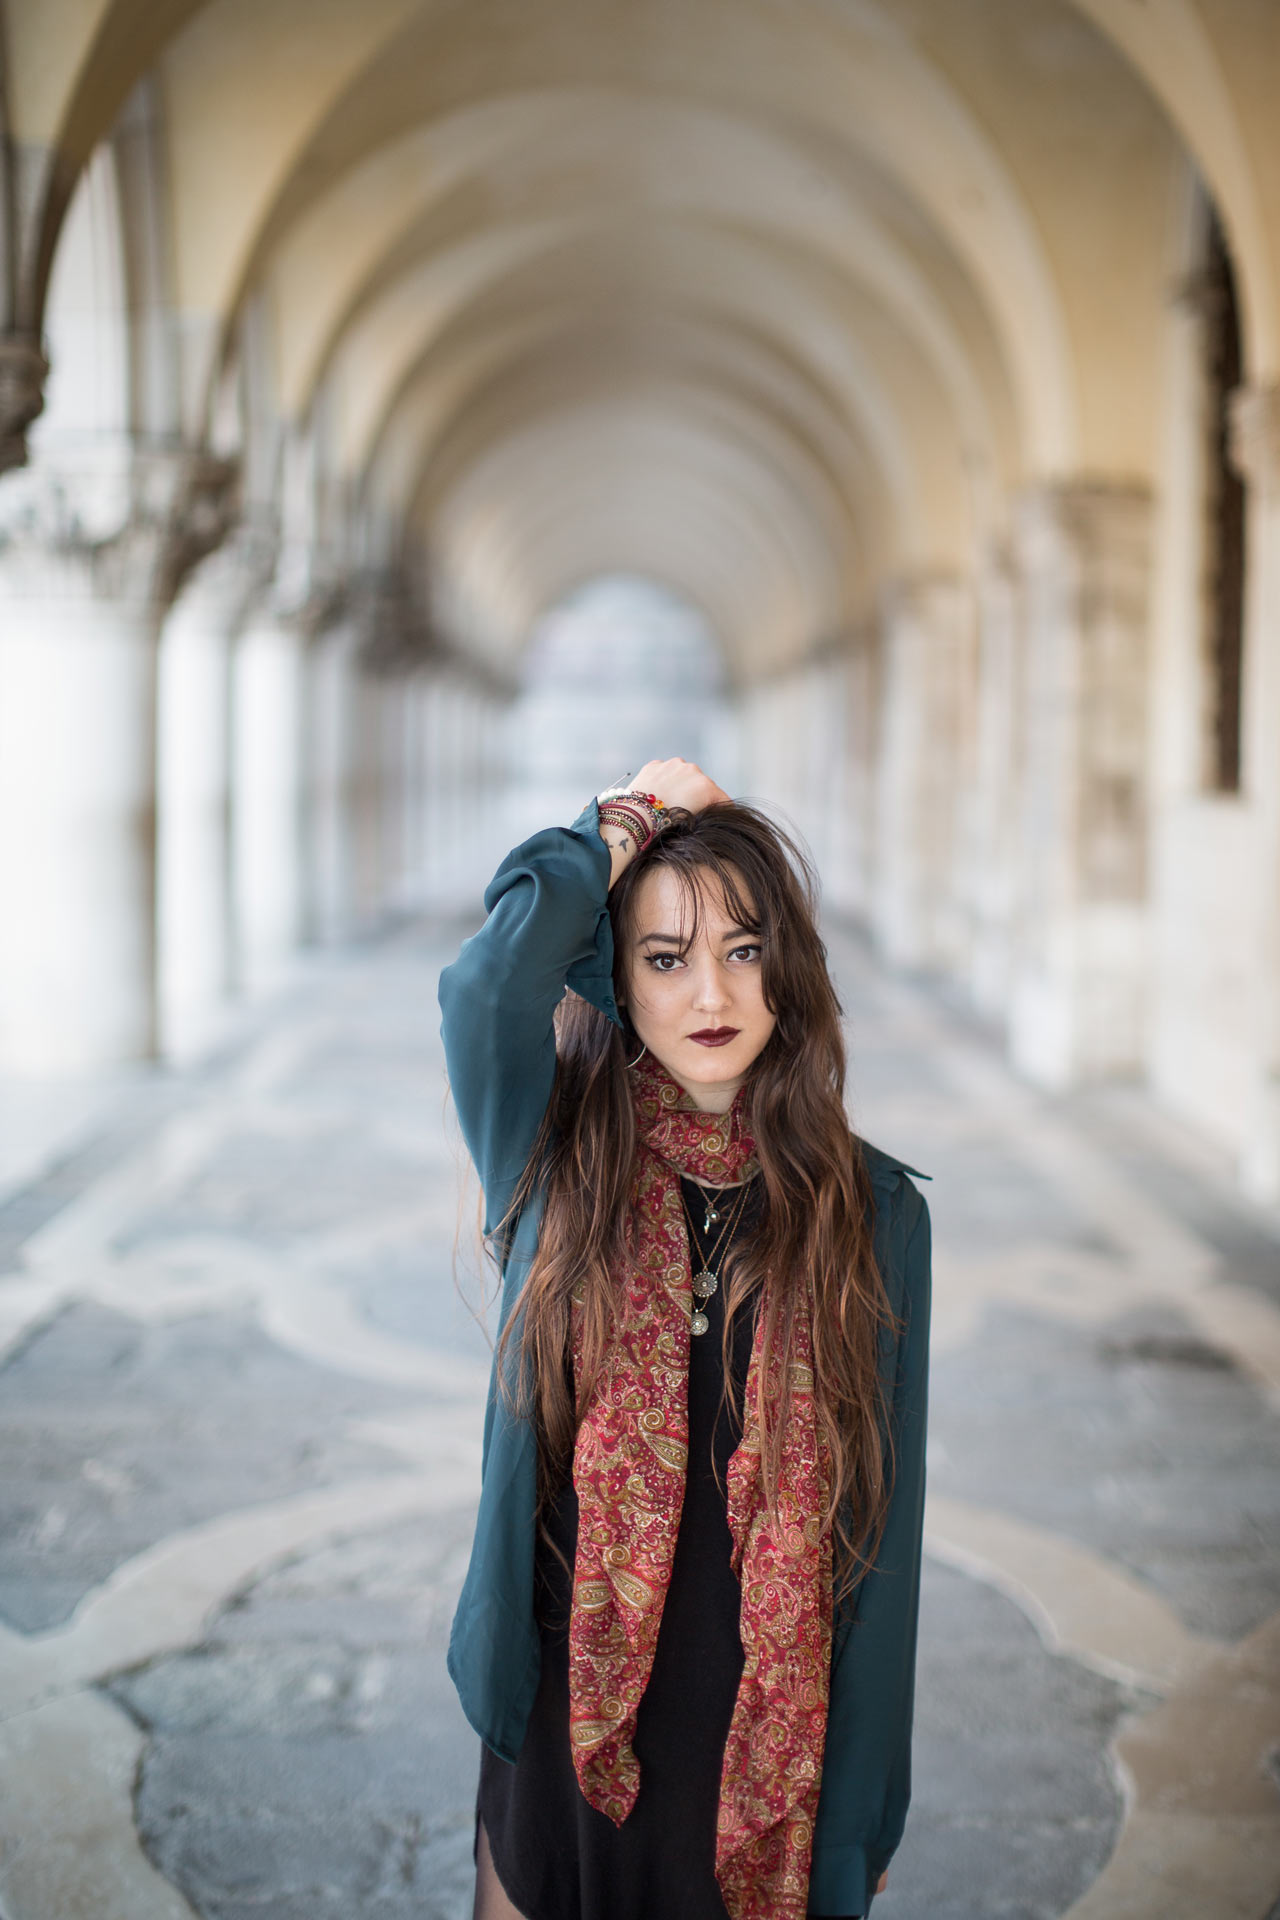 Meagan-portrait-photo-shooting-sunrise-palazzo-ducale-Venezia-Venice